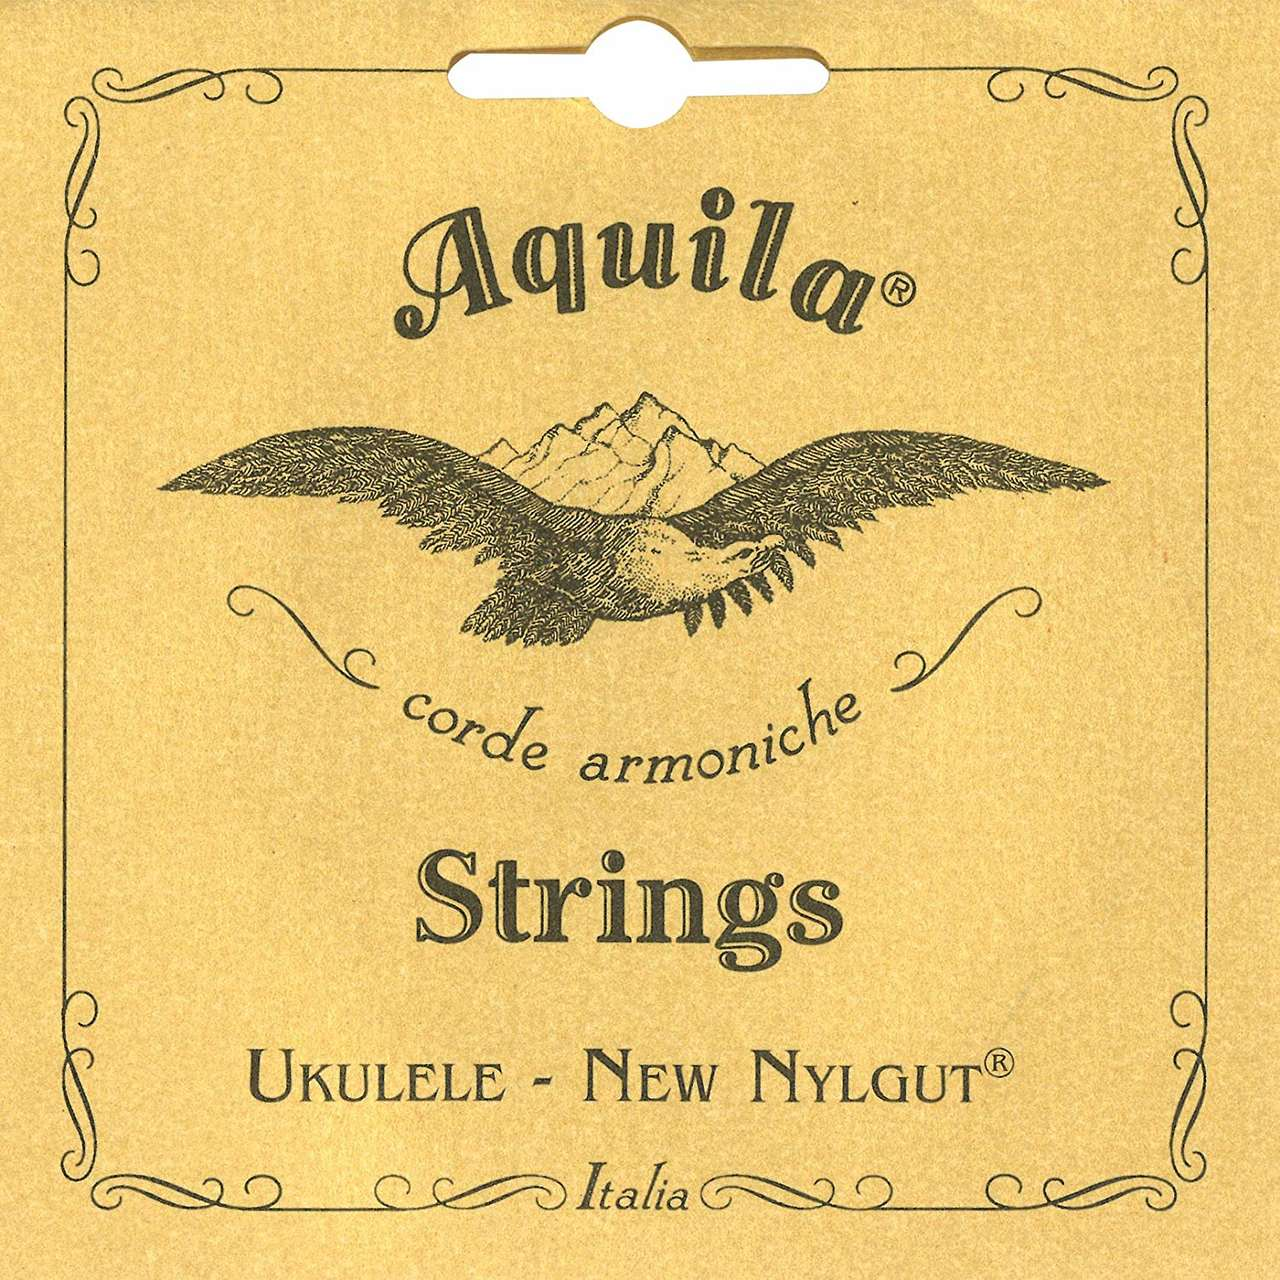 Encordoamento Aquila 15U New Nylgut Low G Ukulele Tenor